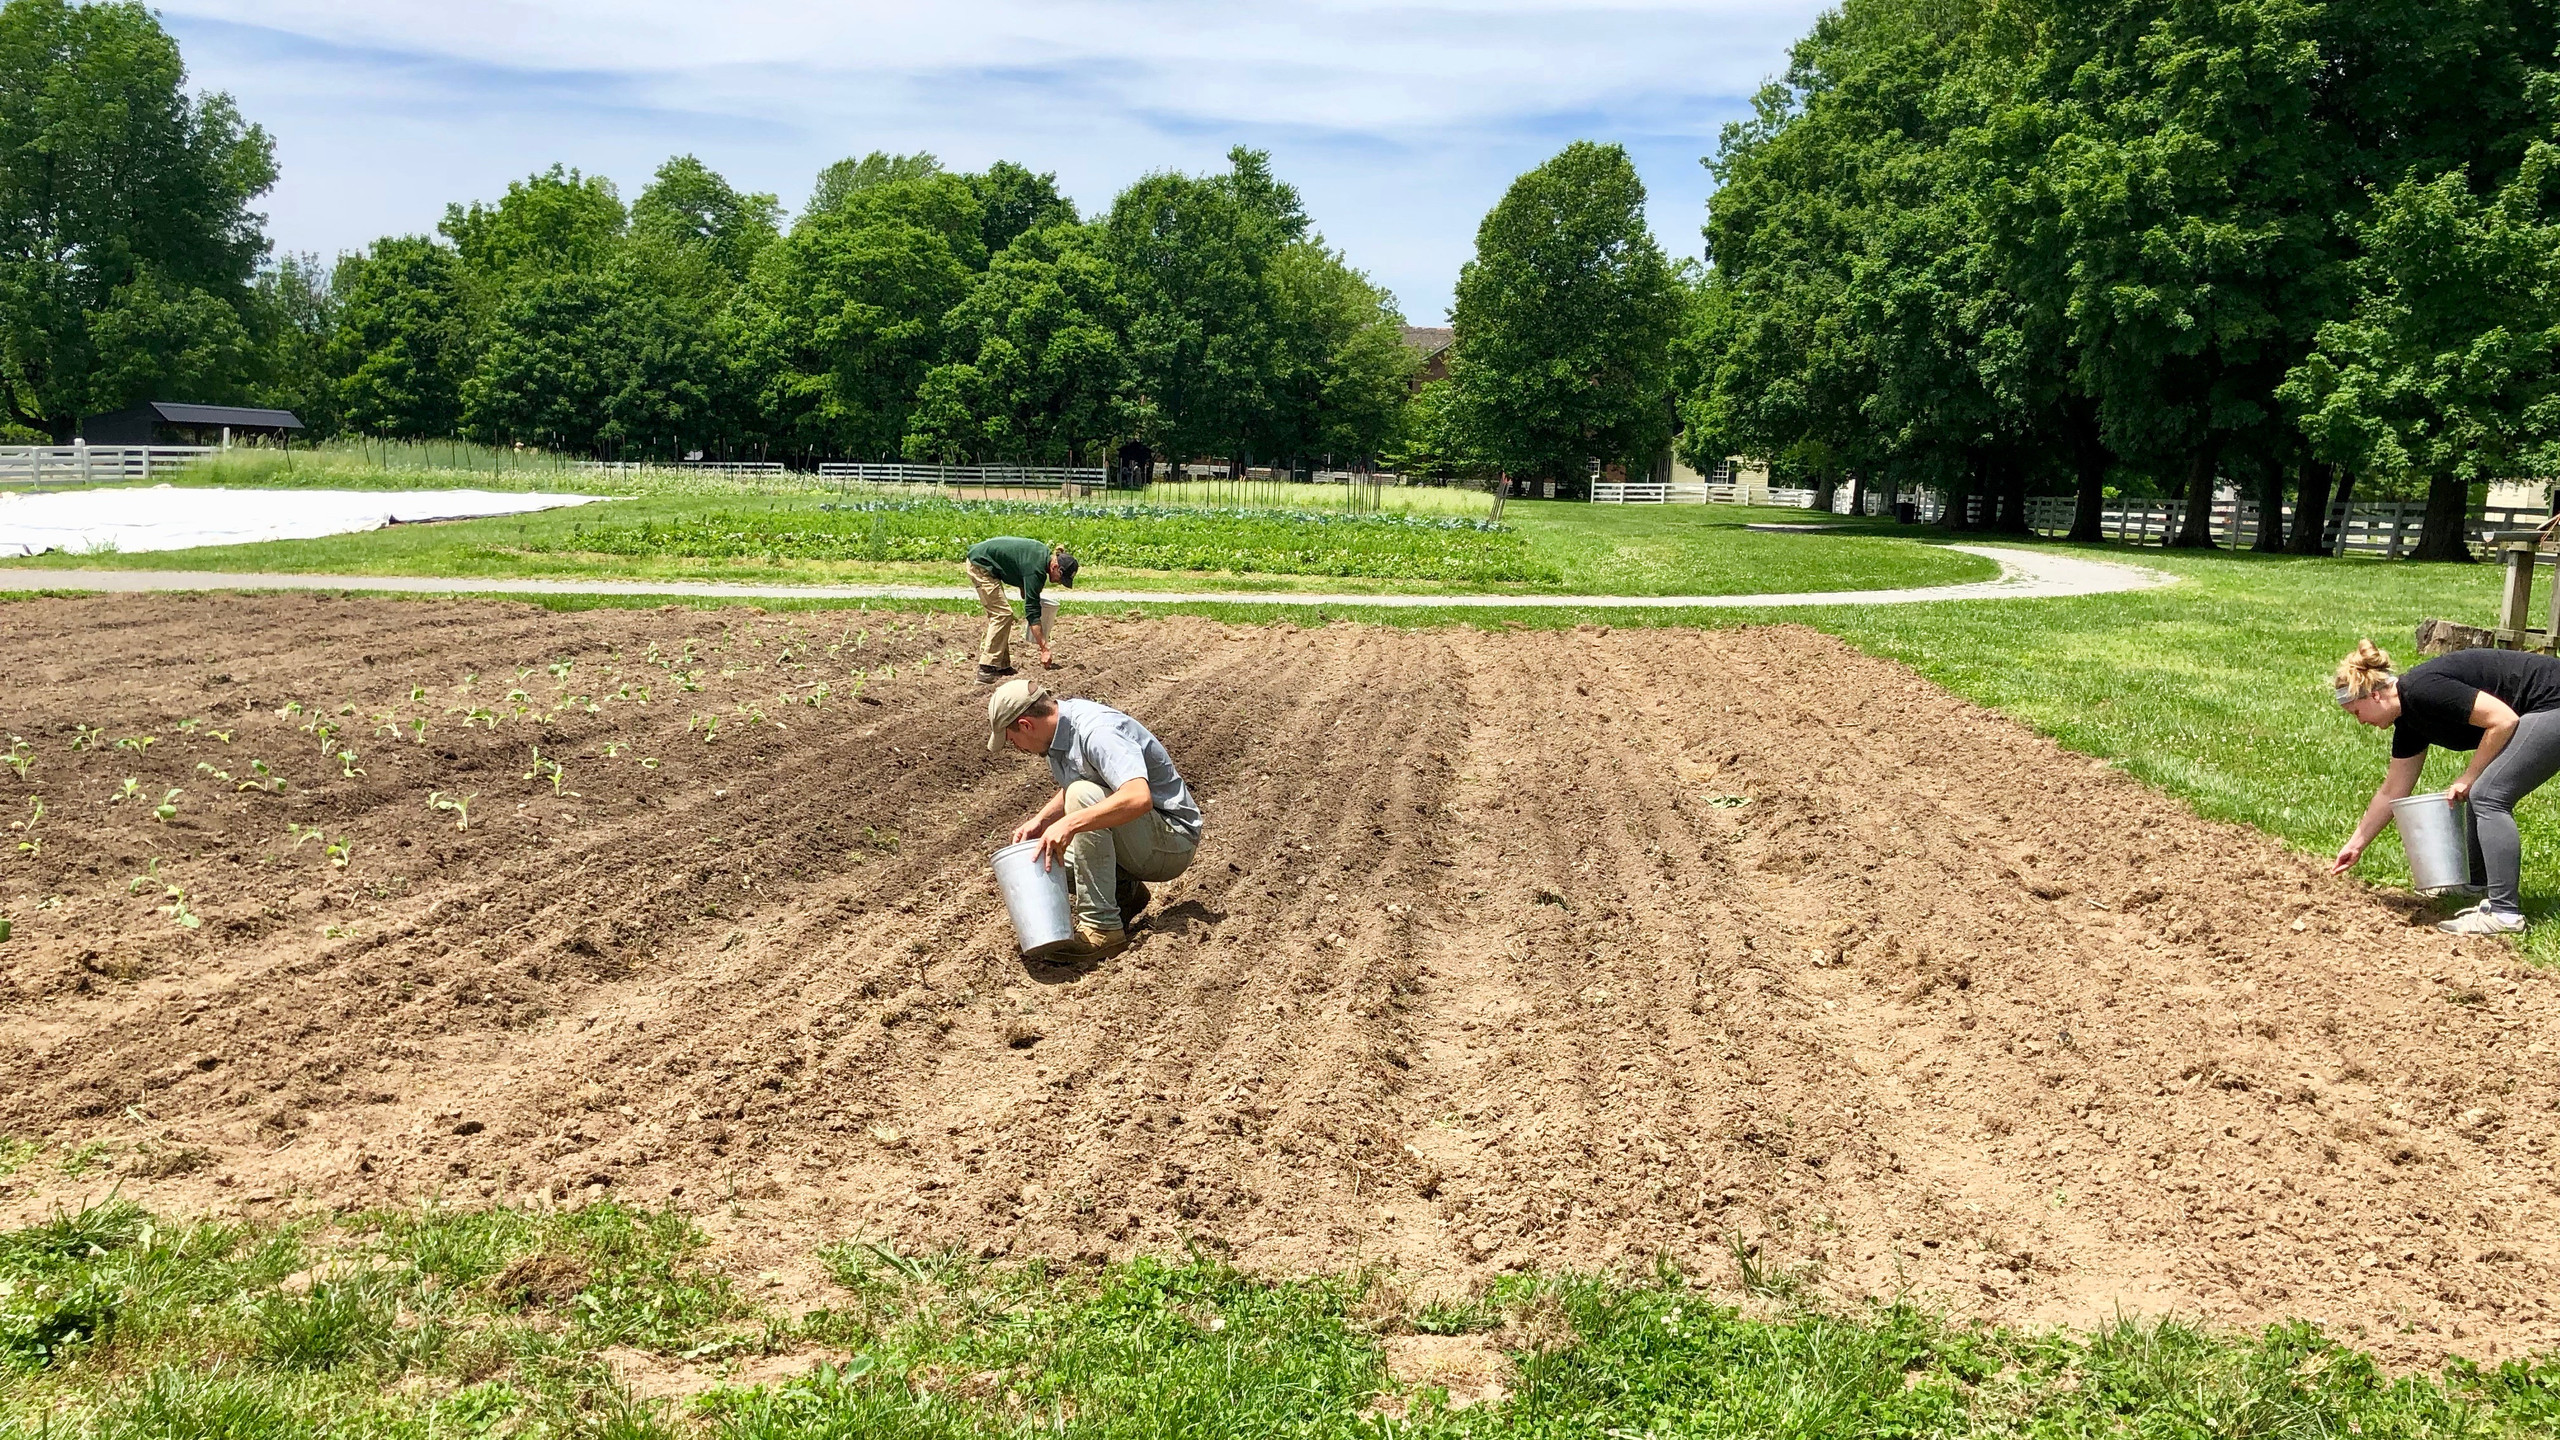 Planting hemp at Shaker Village at Pleasant Hill in Harrodsburg for the first time since the 19th century.